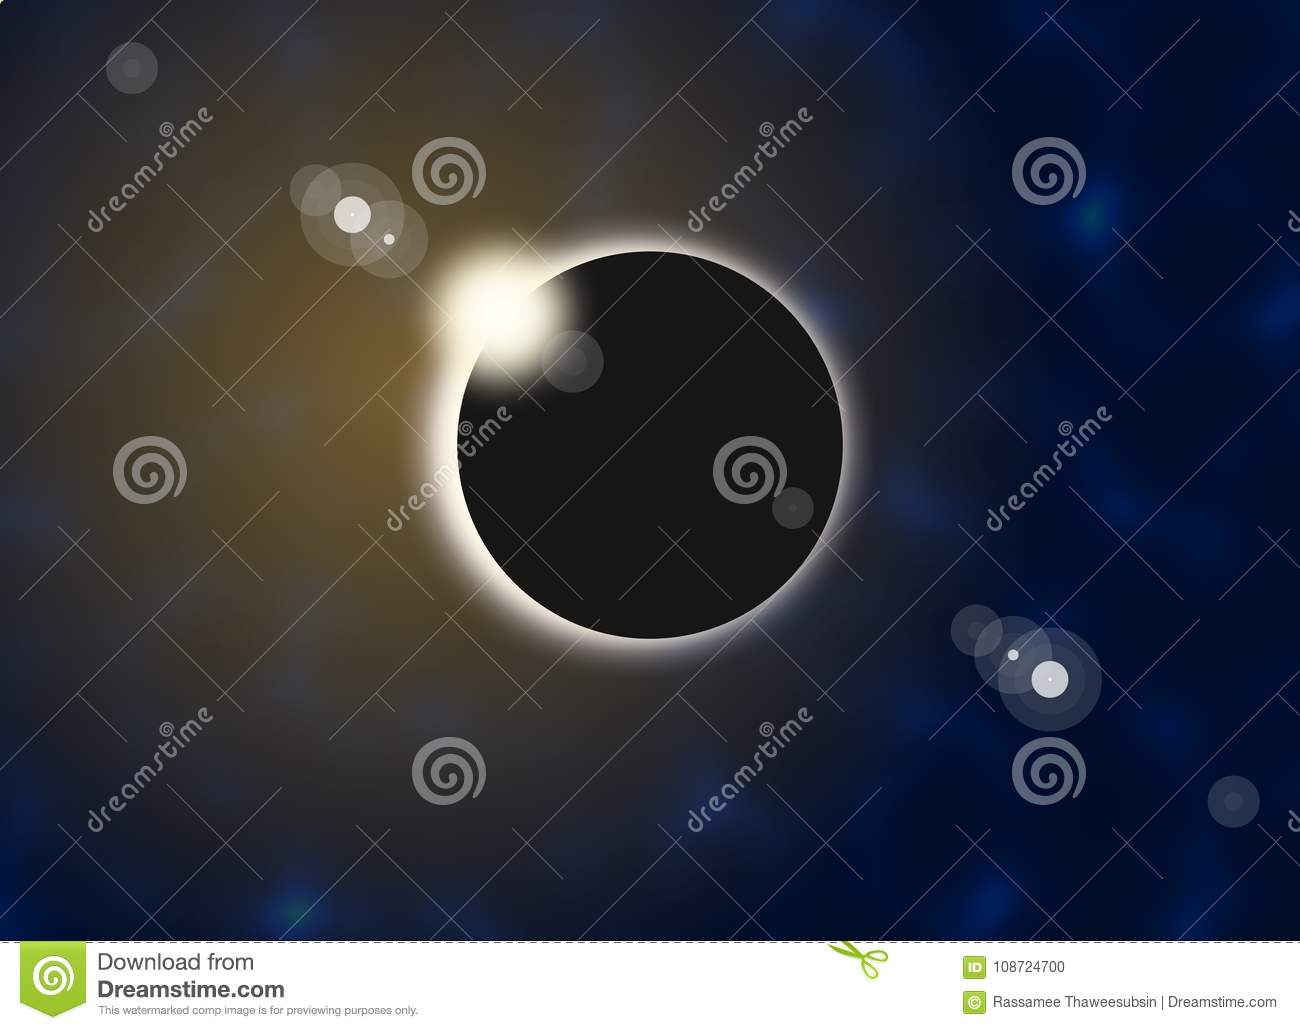 Solar eclipse and flare in the sky illustrations